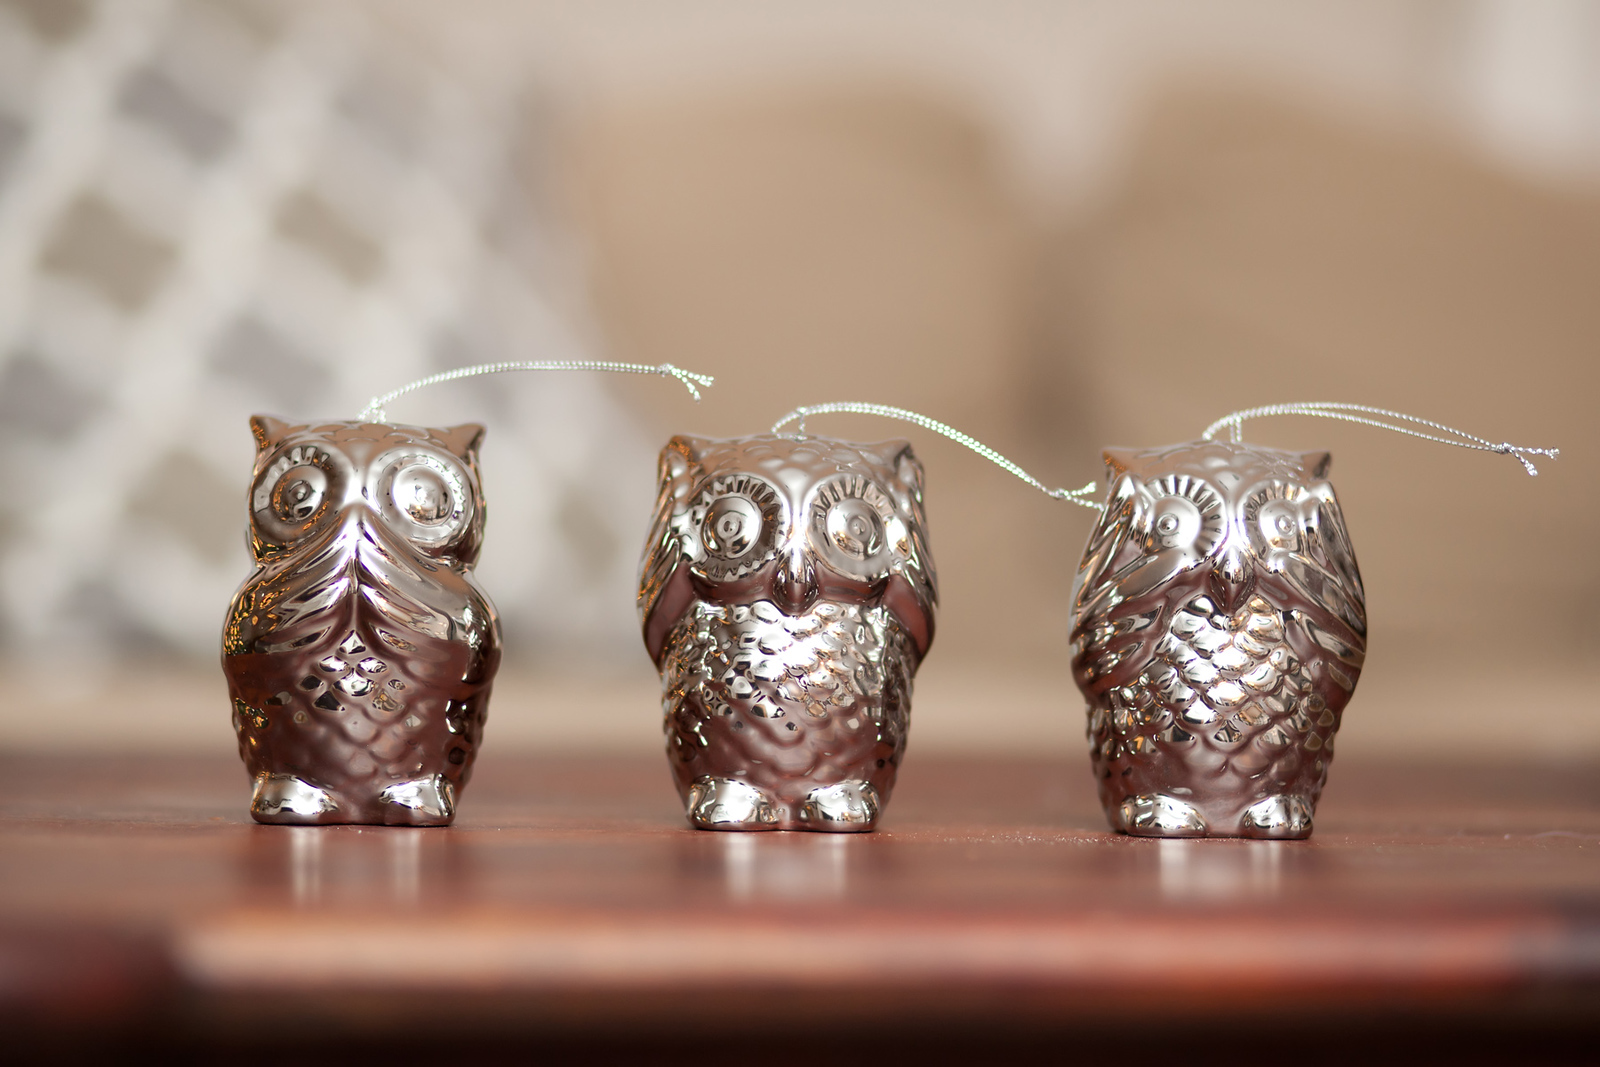 Three Wise Owls ornaments